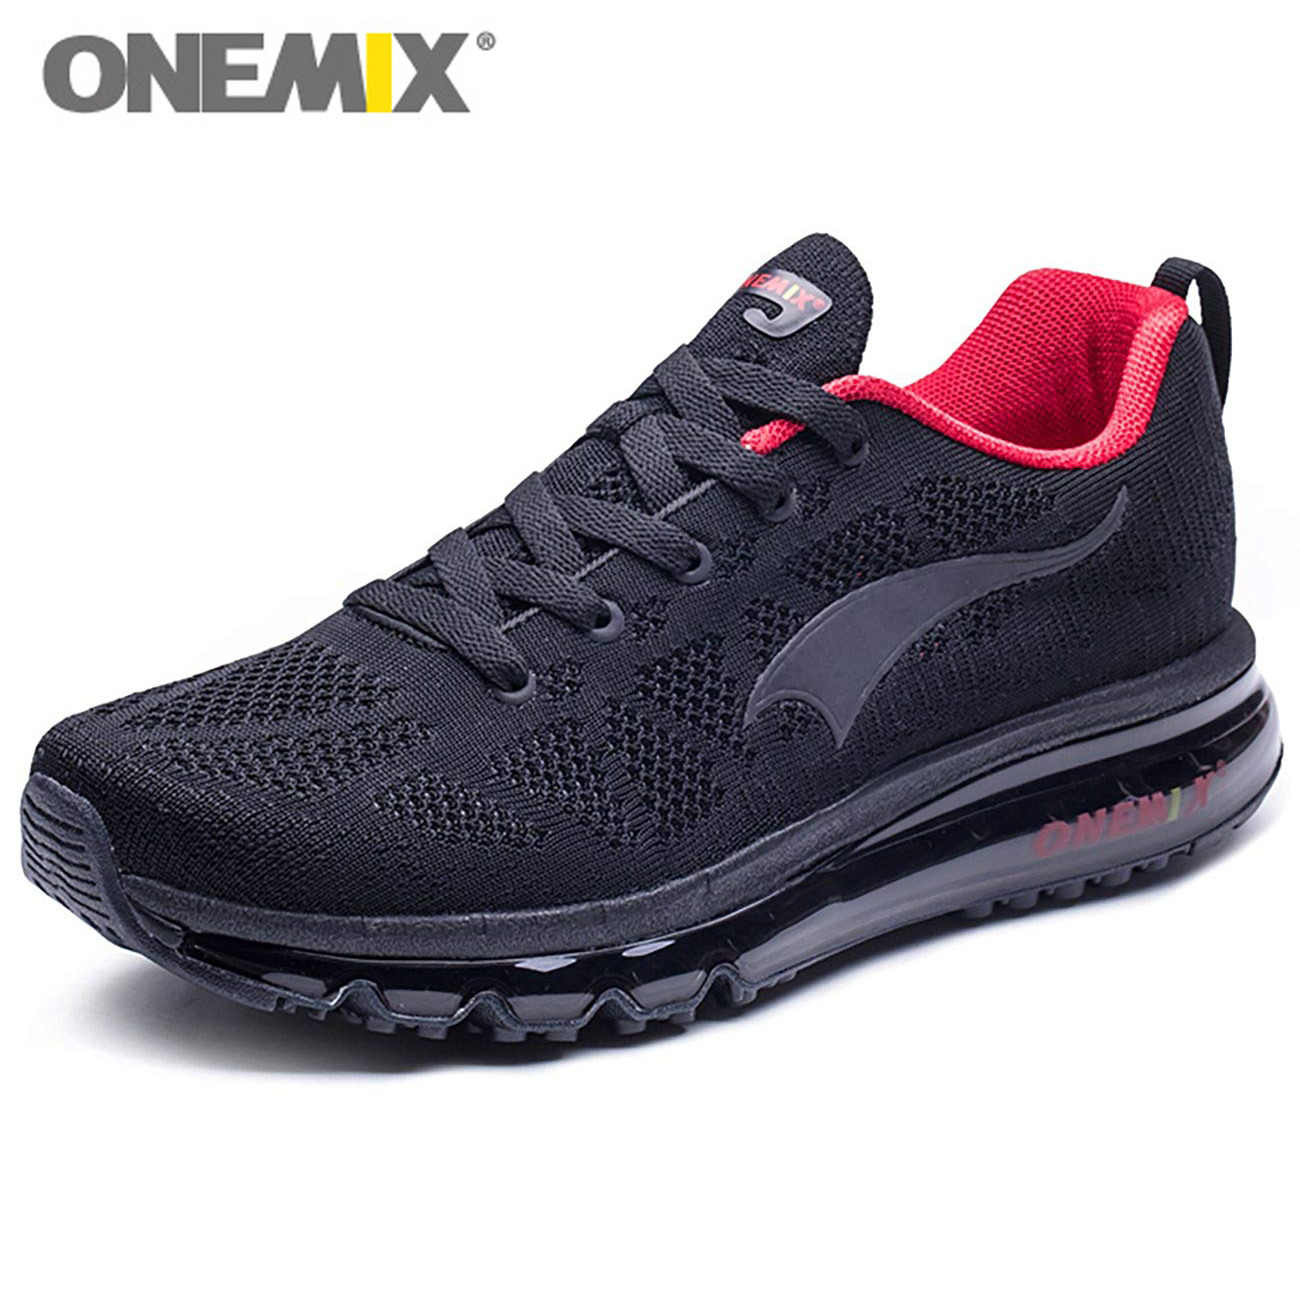 competitive price 53f52 7d7ca ONEMIX Men Air Running Shoes Sport Shoes Outdoor Gym Fitness Snerkers 270  Zapatos De Hombre Max